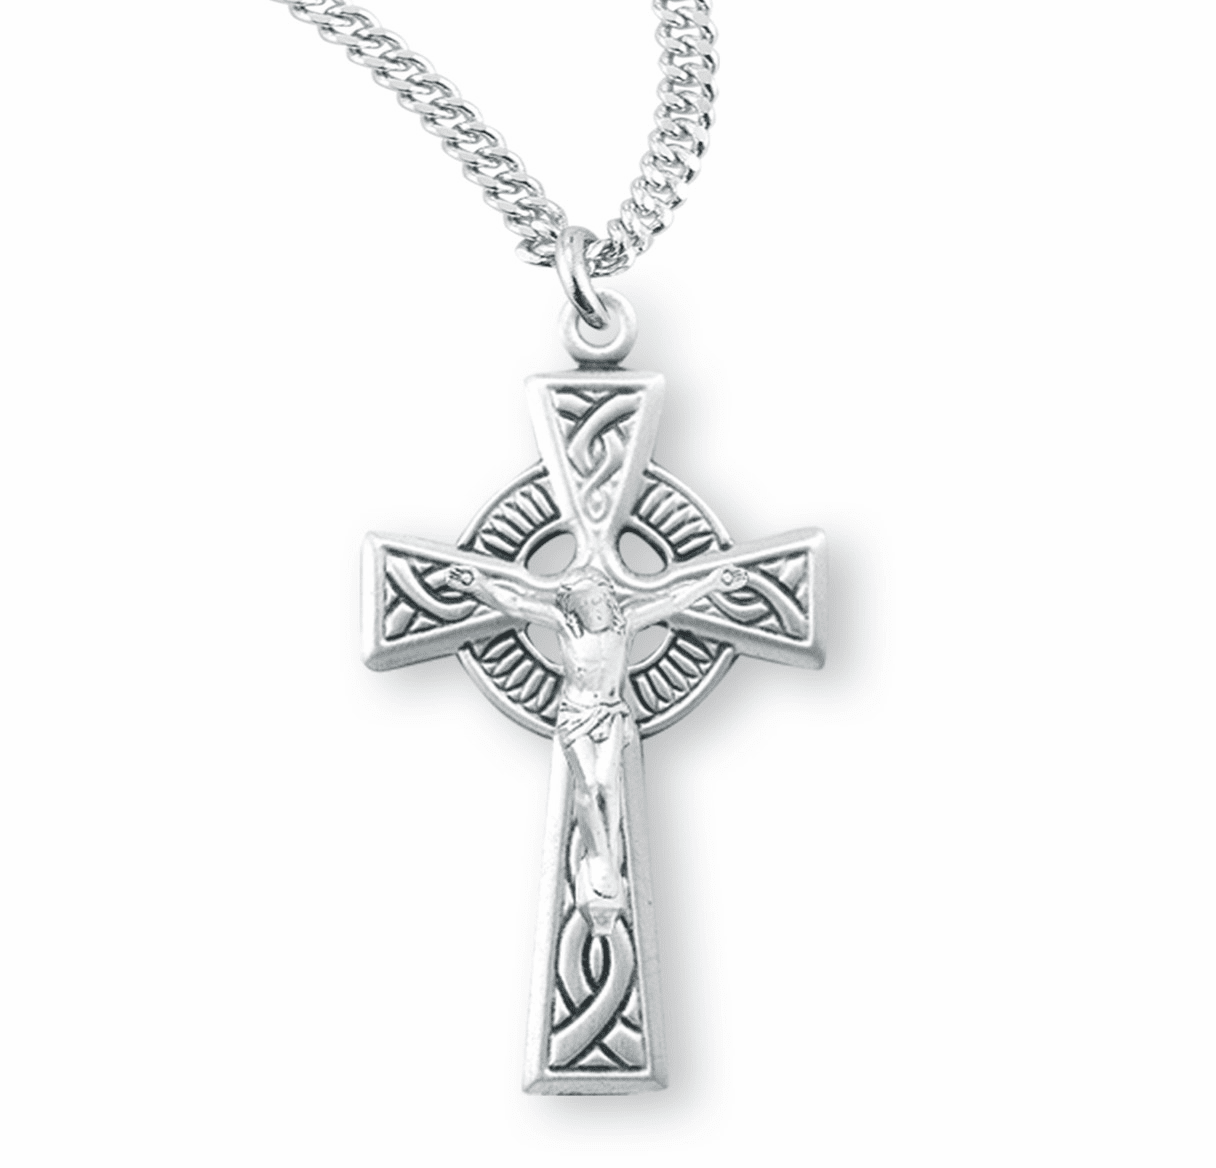 Irish Celtic Weave Sterling Silver Crucifix Cross Necklace by HMH Religious